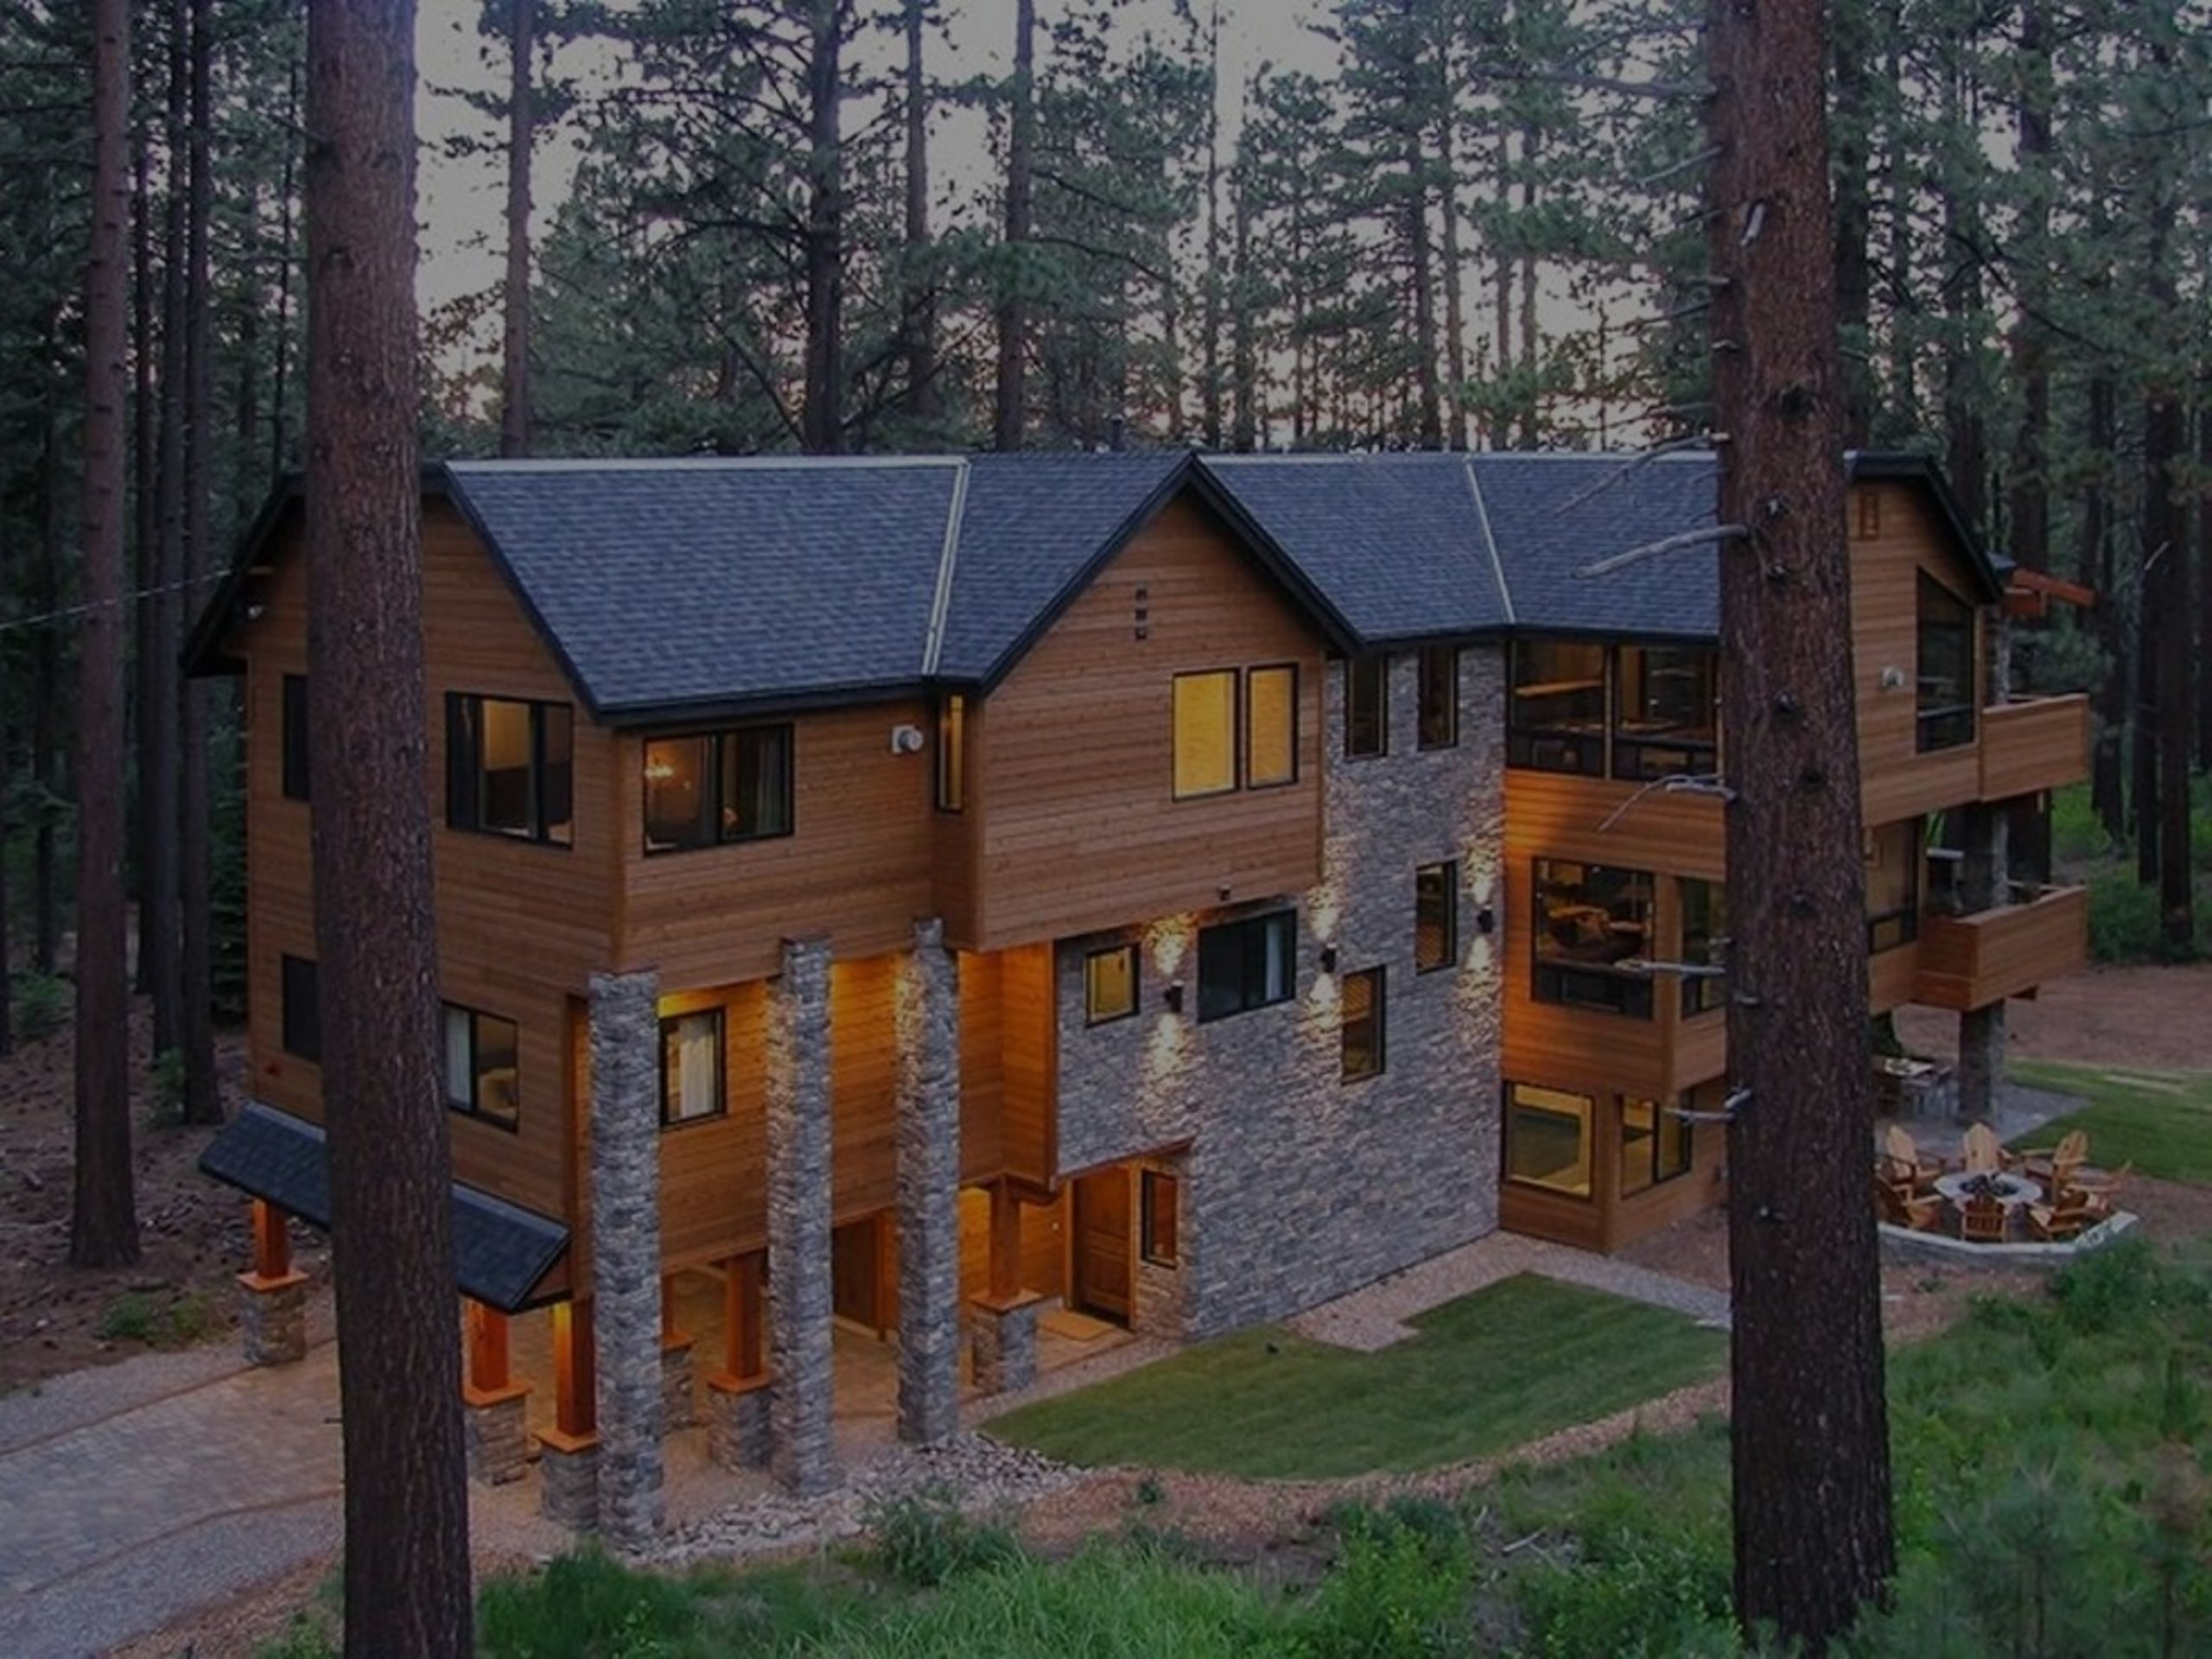 See Inside One Of The Most Expensive Airbnb's in America That Costs $2,500 Per Night